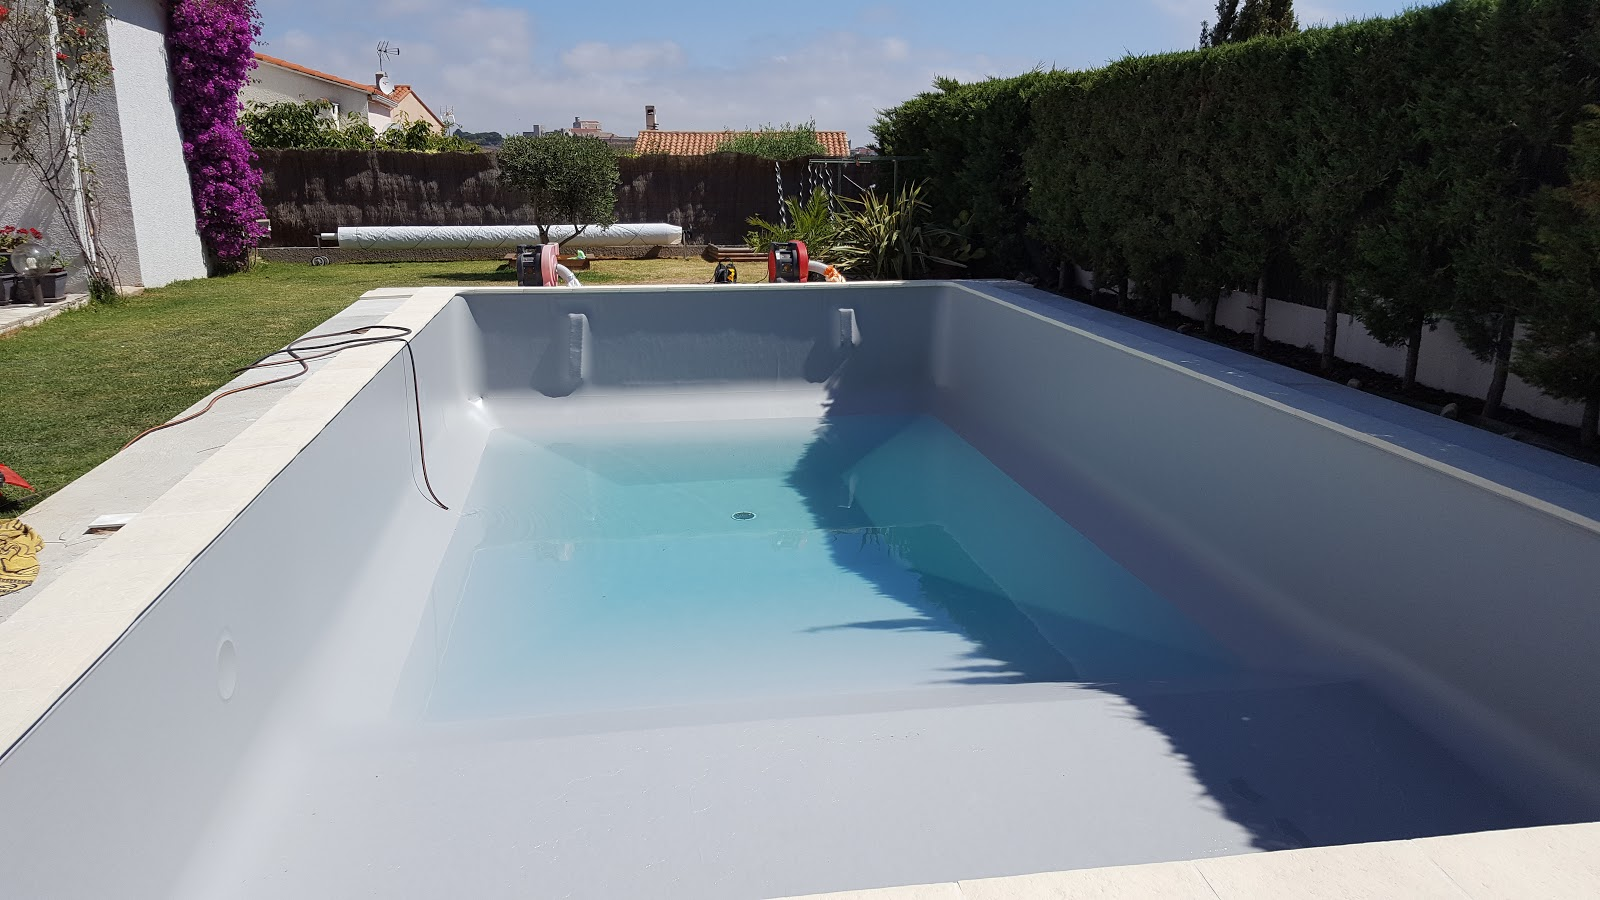 Piscine perpignan 66 aquazur piscine installation for Liner pour piscine en 8